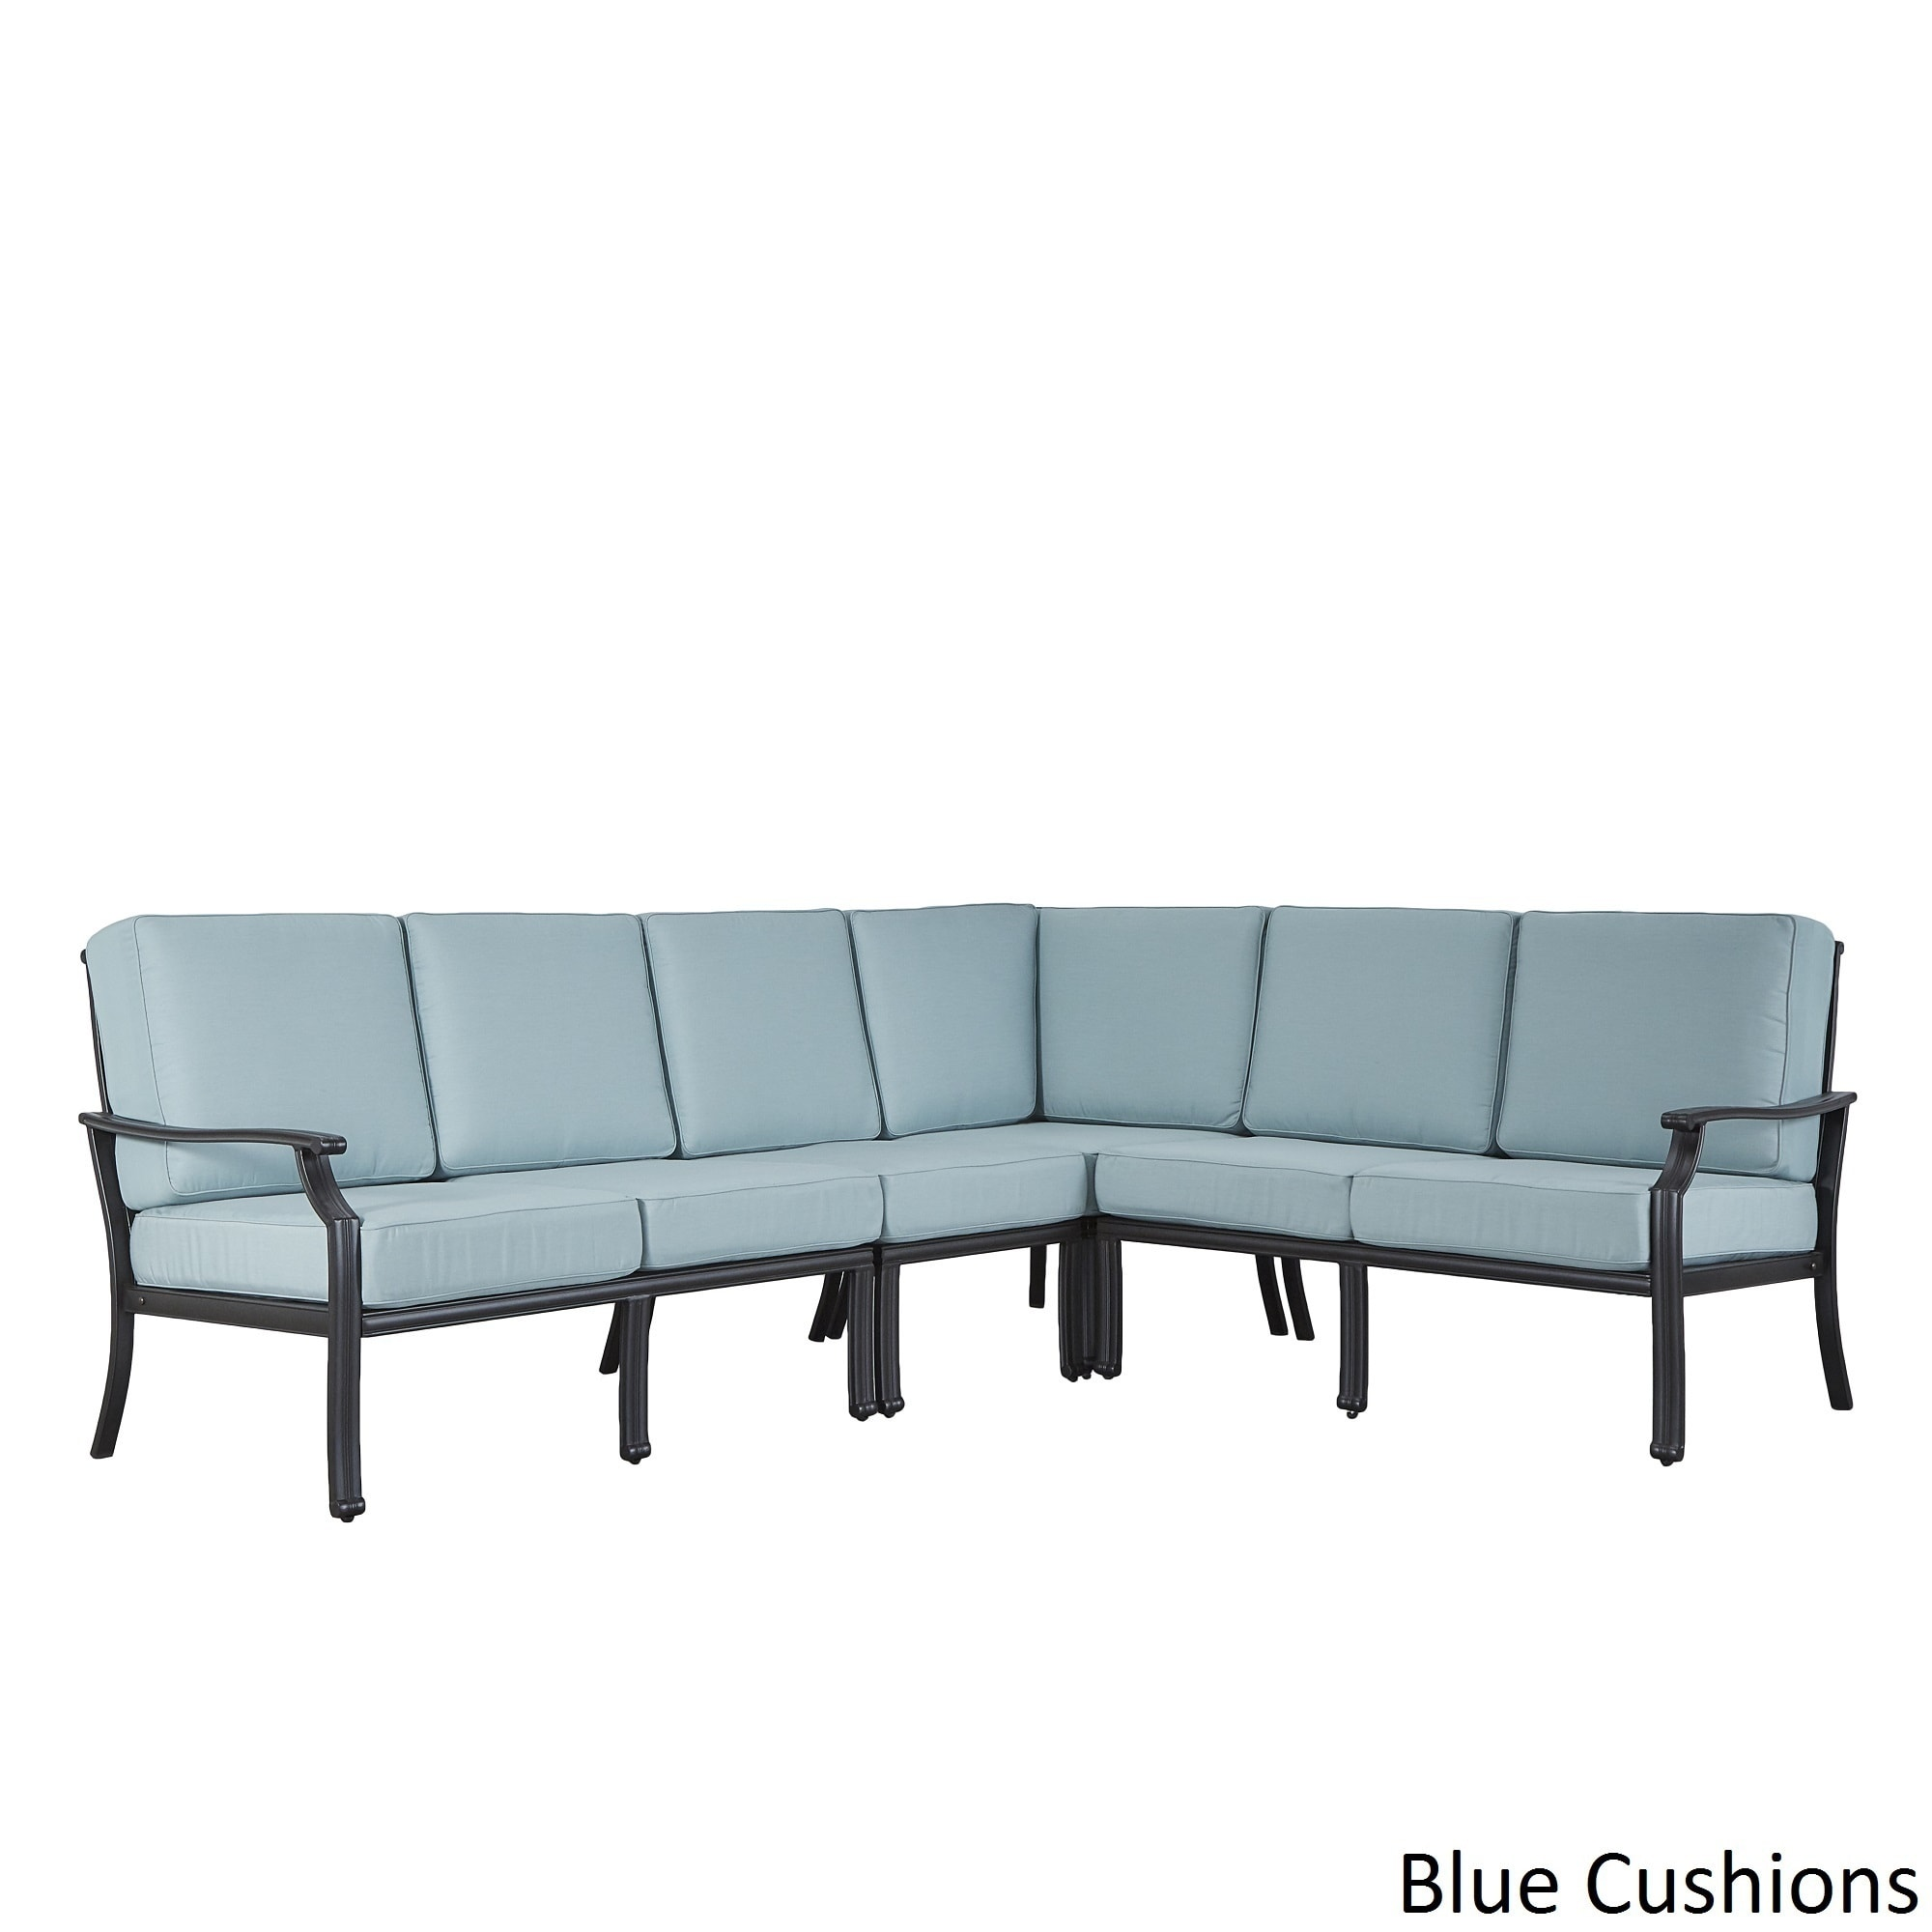 outdoor sectional metal for shop matira metal modern 6seat lshaped outdoor sectional by inspire oasis free shipping today overstockcom 12803287